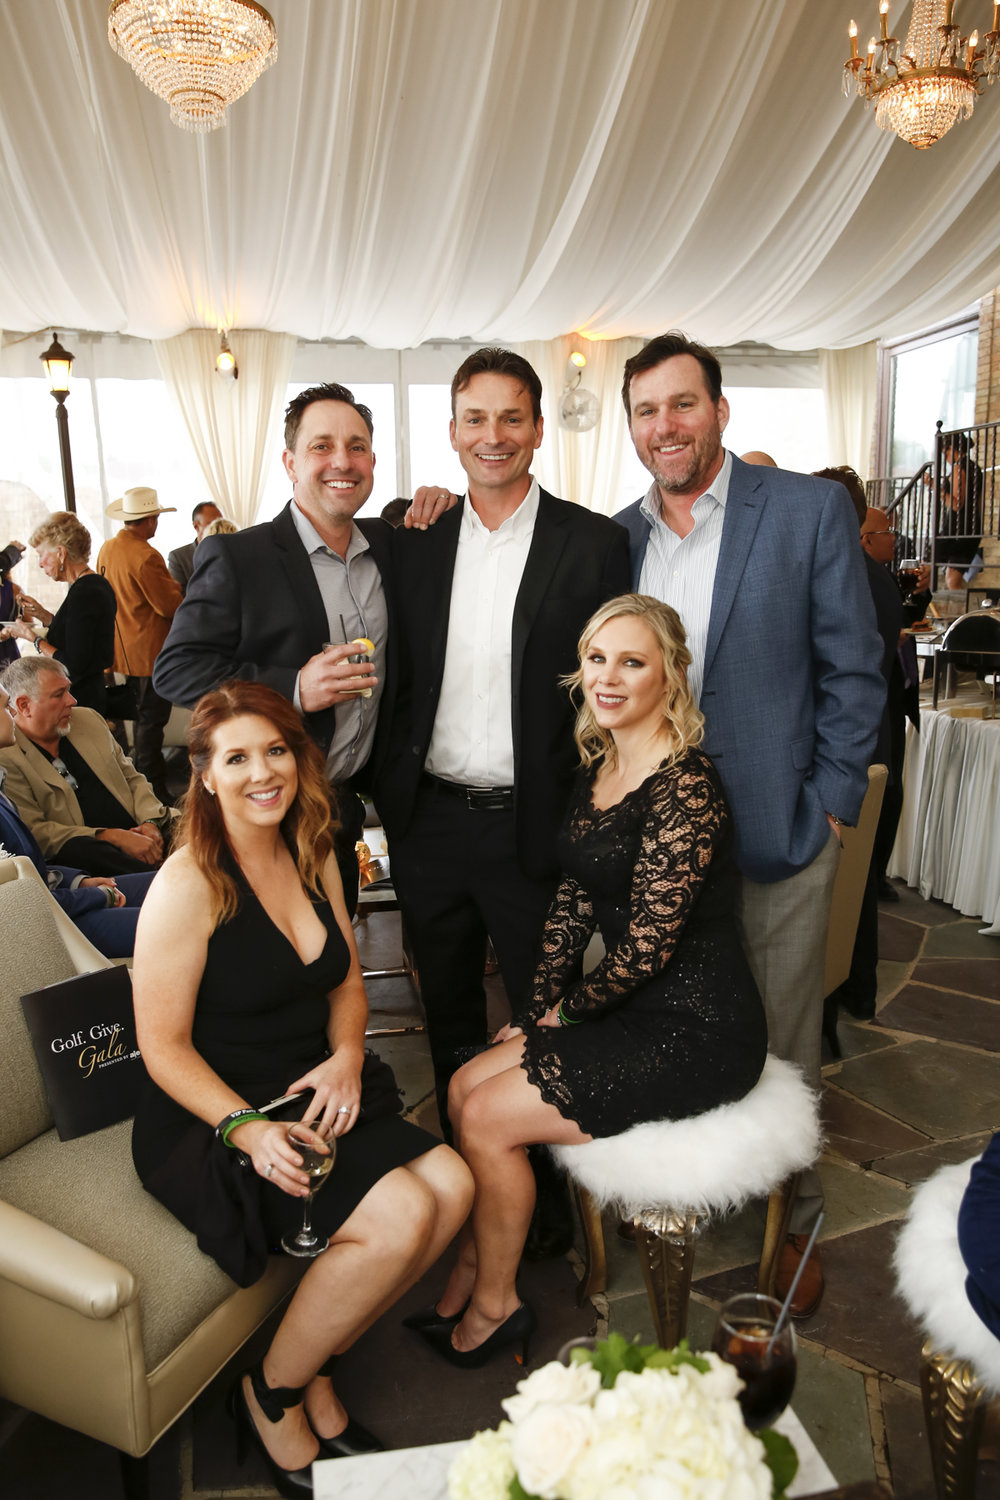 golf-give-gala-celebrity-michael-phelps-jason-day-event-photographer-madison-wi-31.jpg